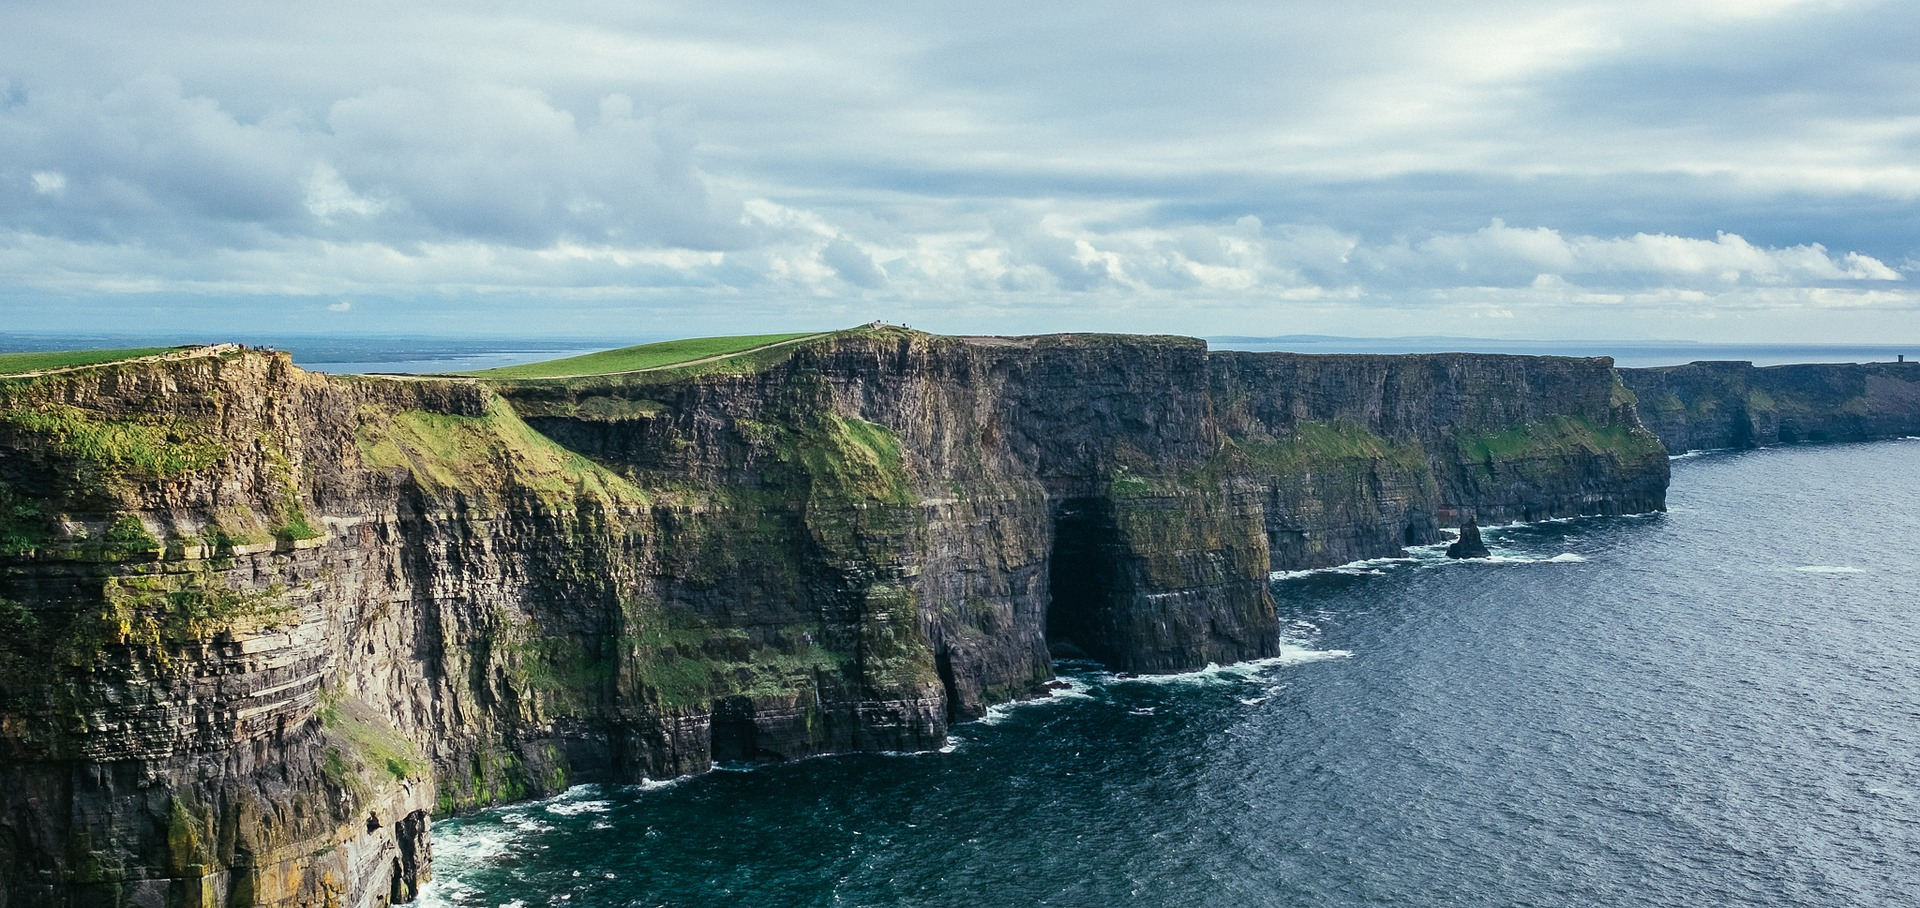 cliff-of-moher-2371819_1920